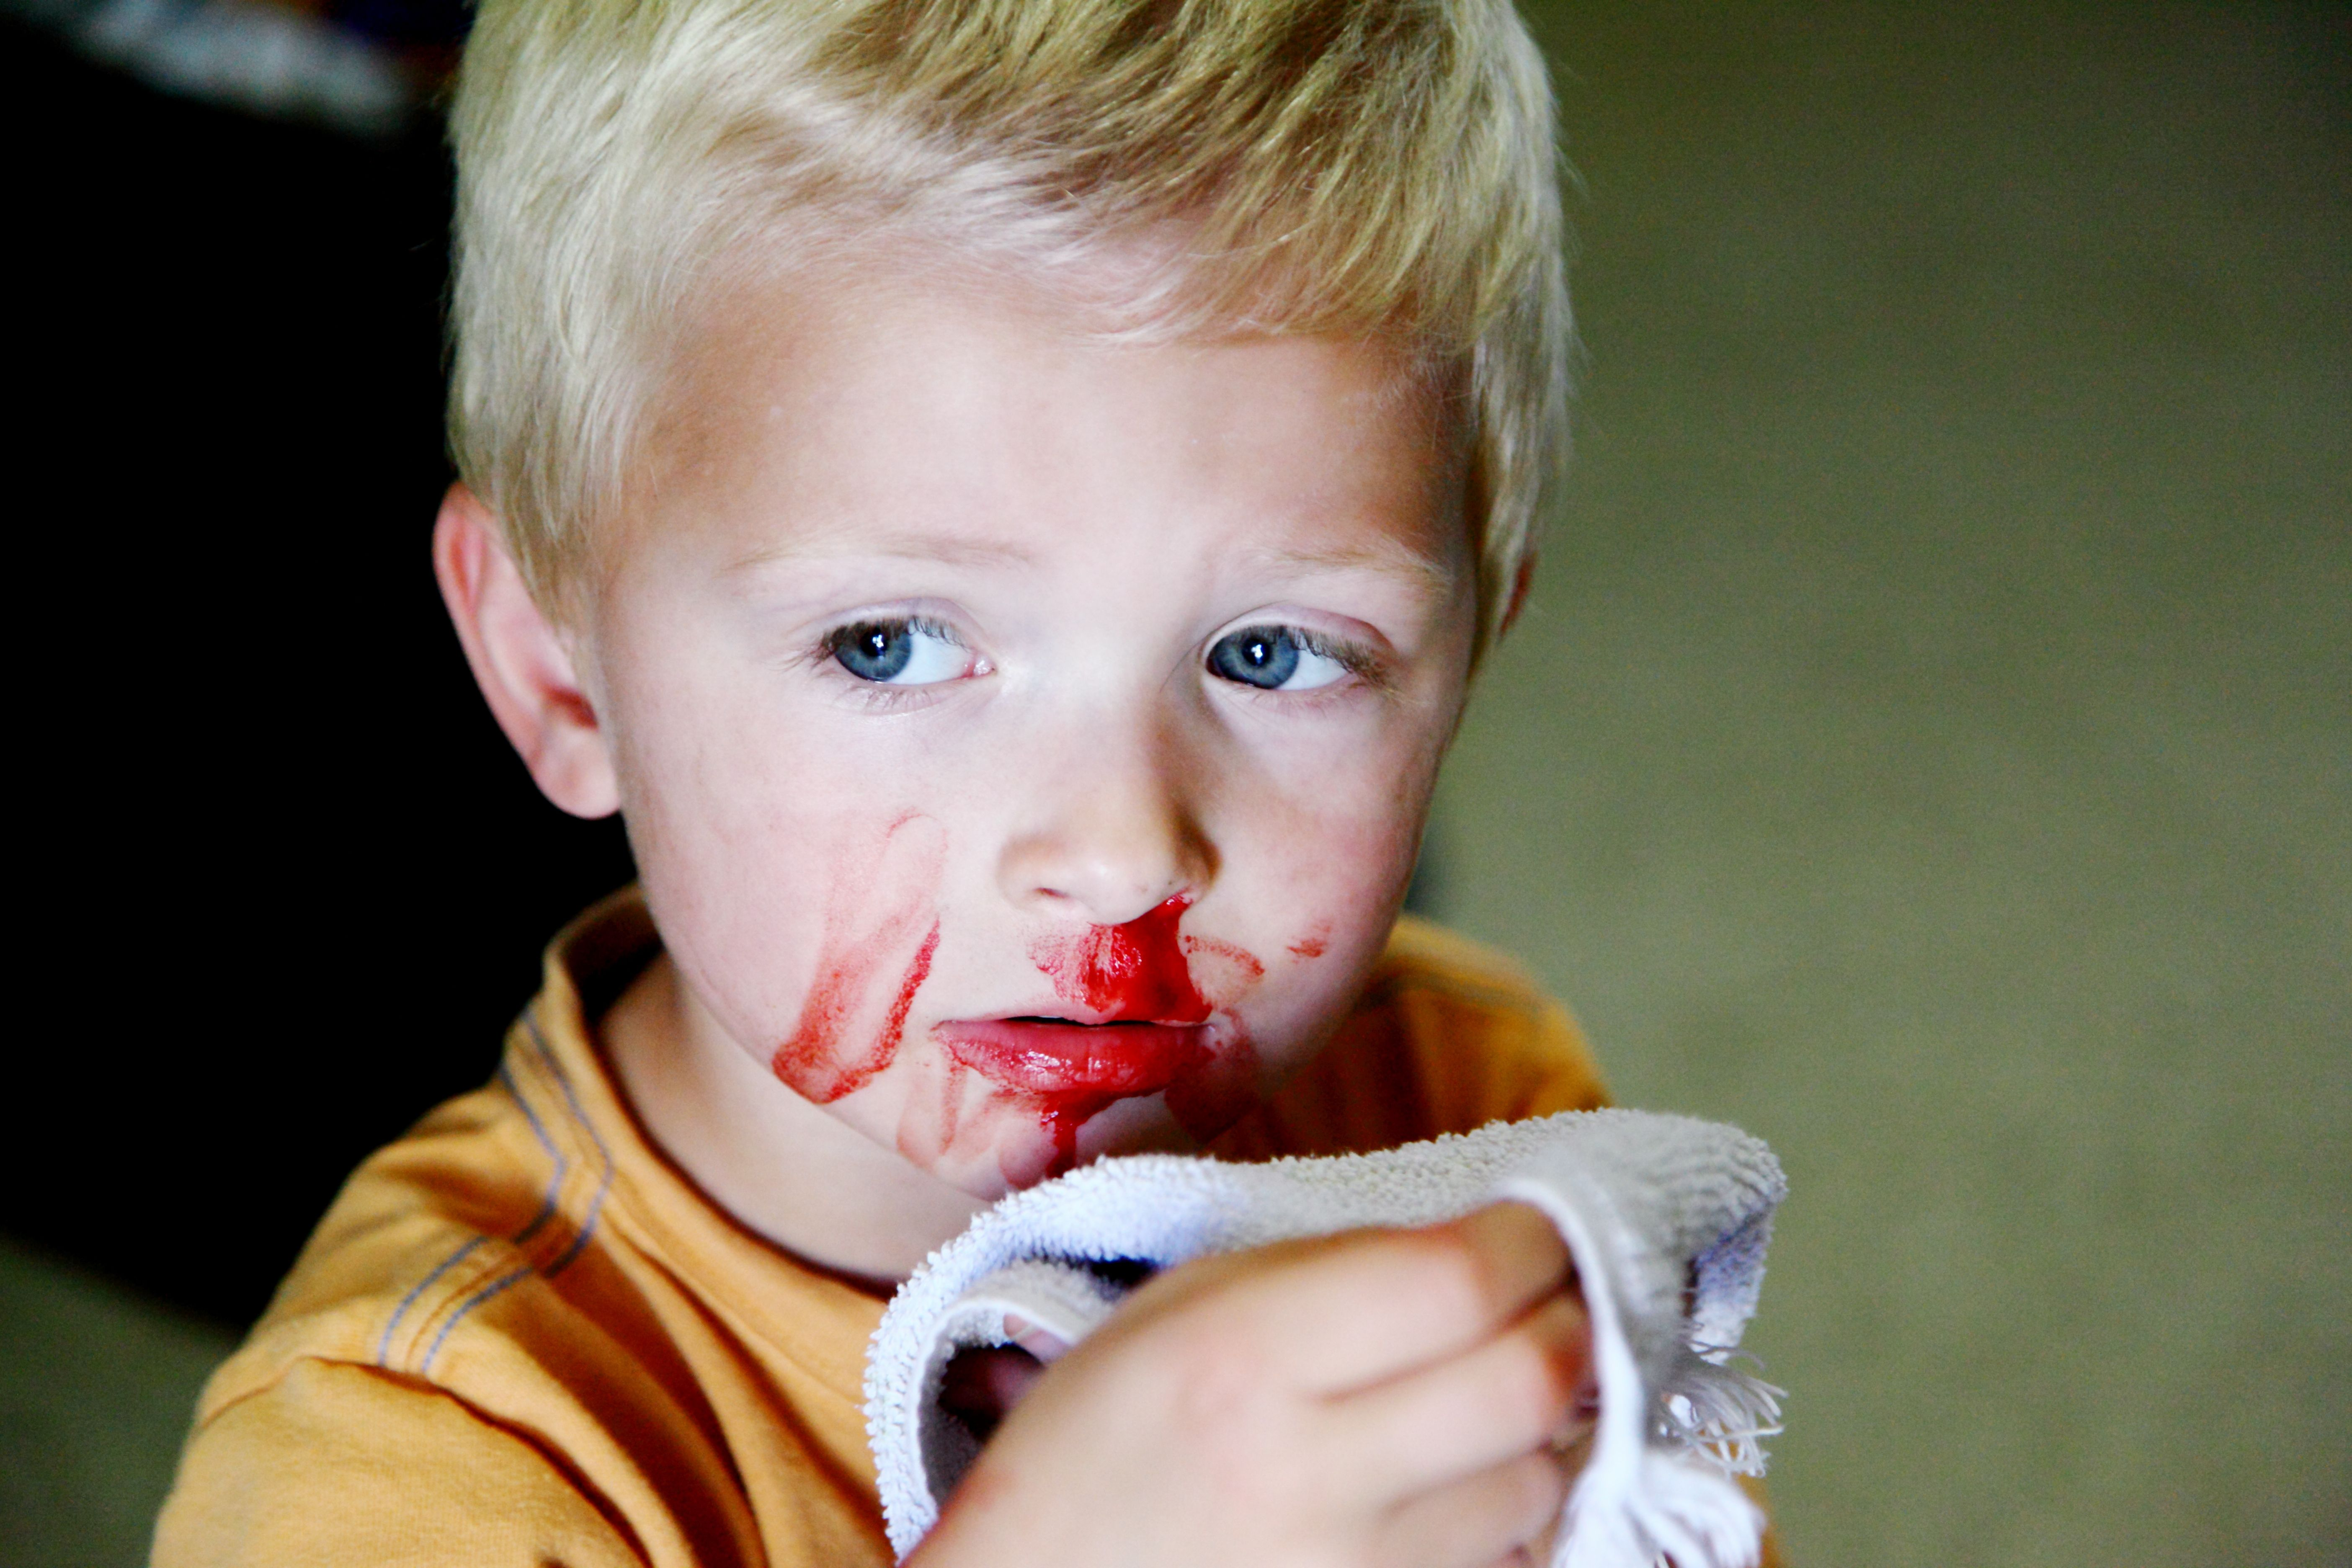 Causes And Treatment Of Nosebleeds